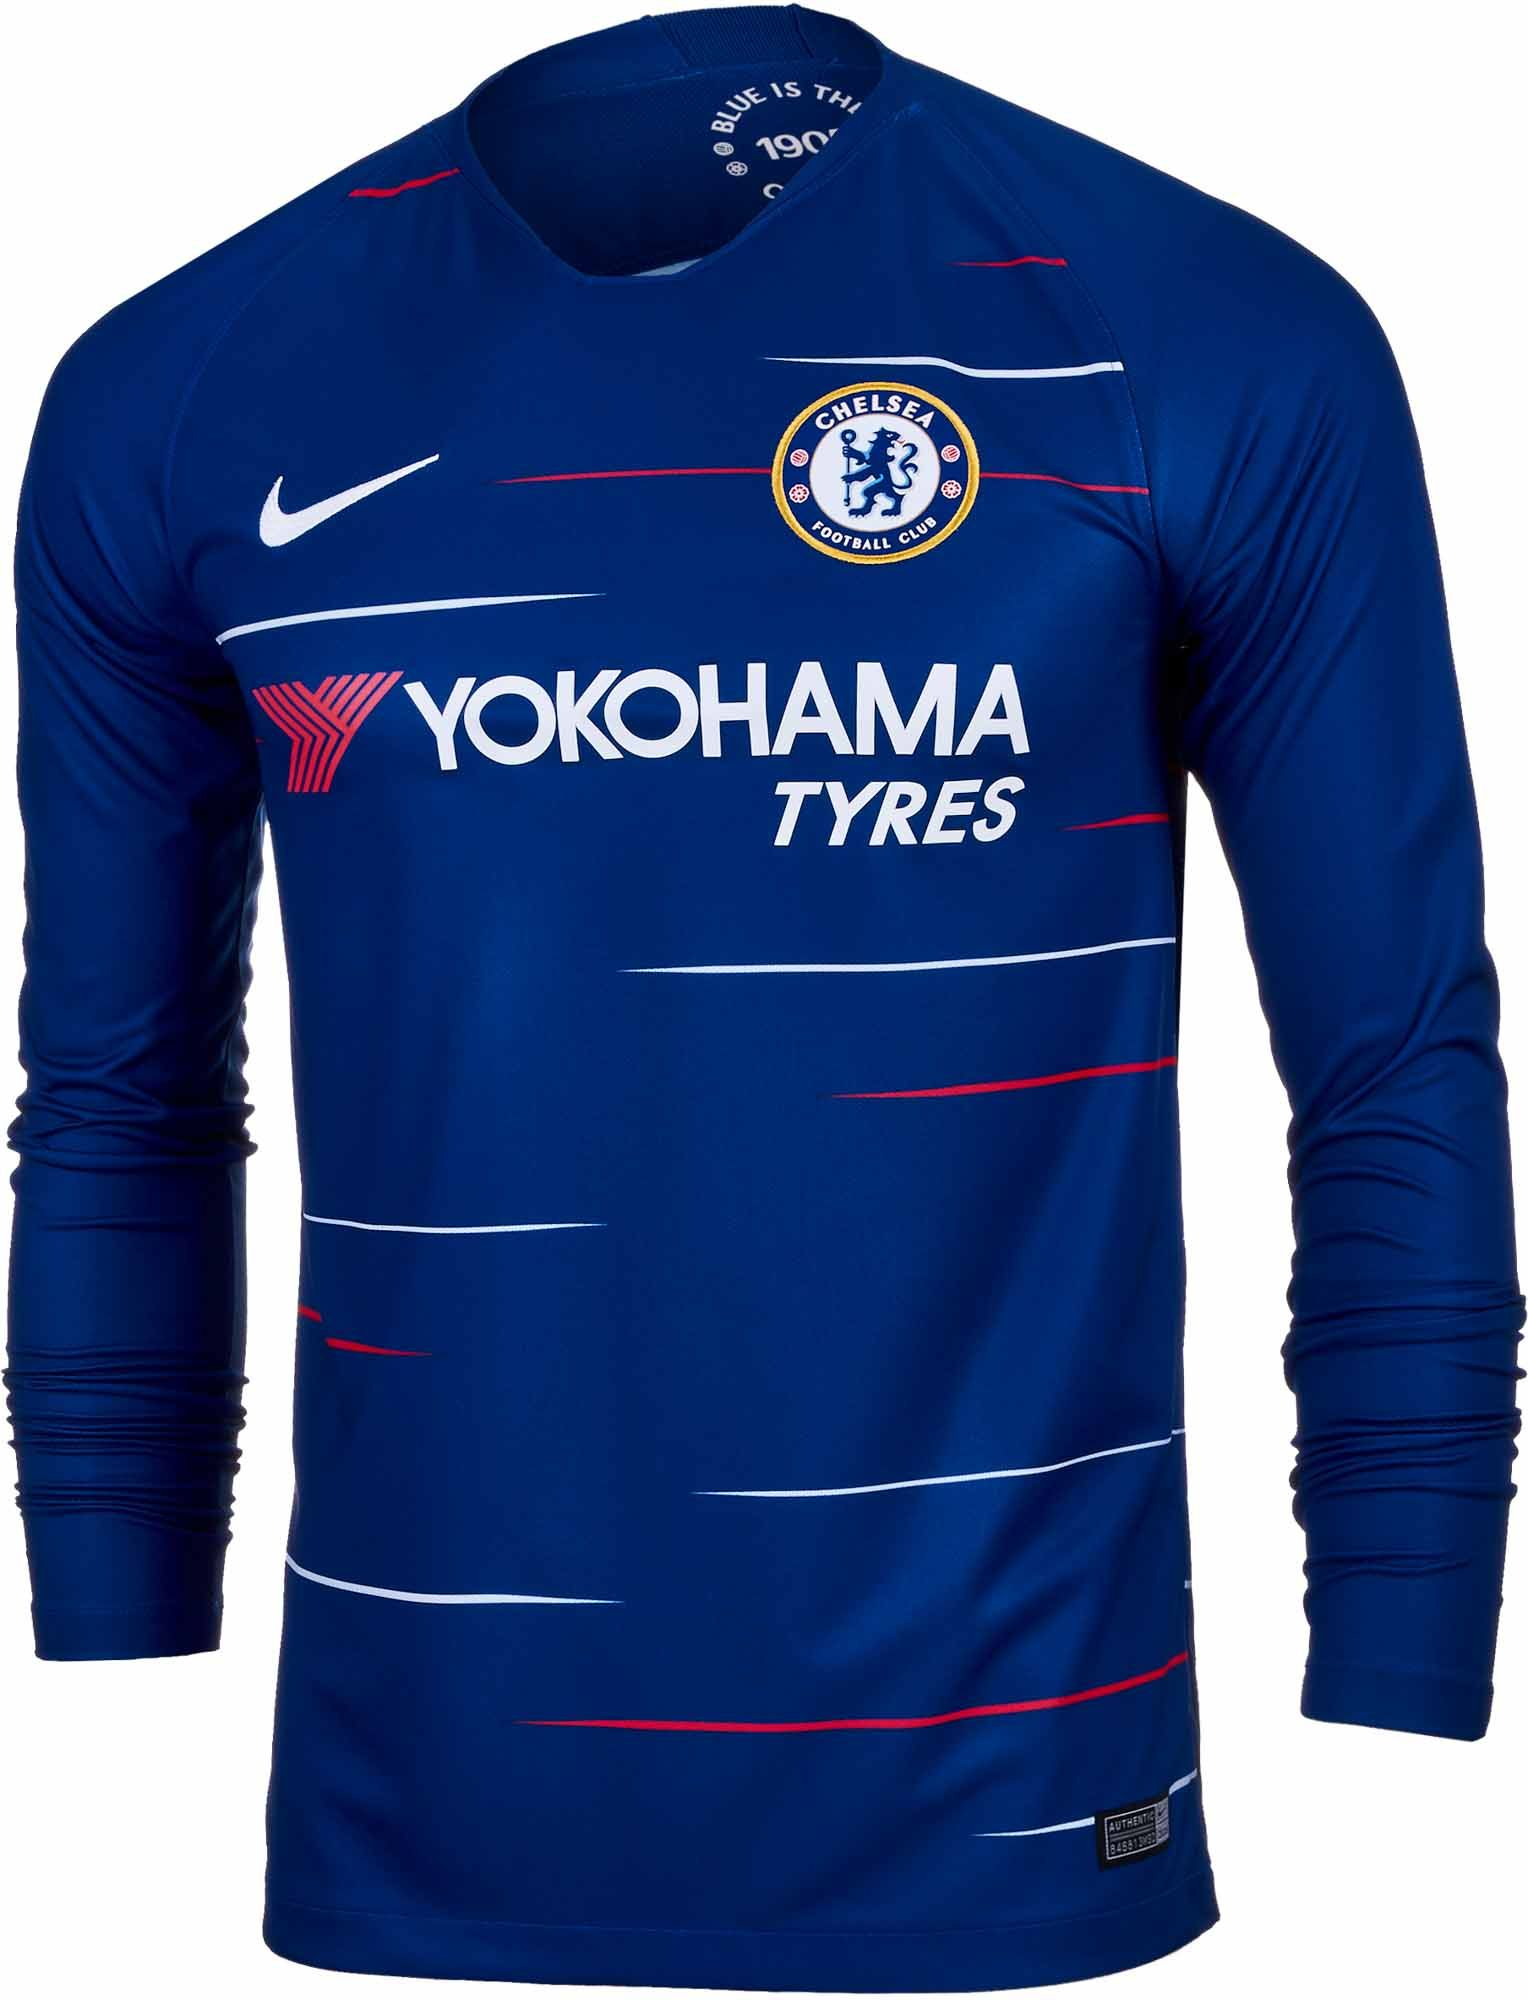 2018 19 adidas Chelsea FC L S Home Jersey. Hot at soccerpro.com right now.  Get yours today. 2813d127e